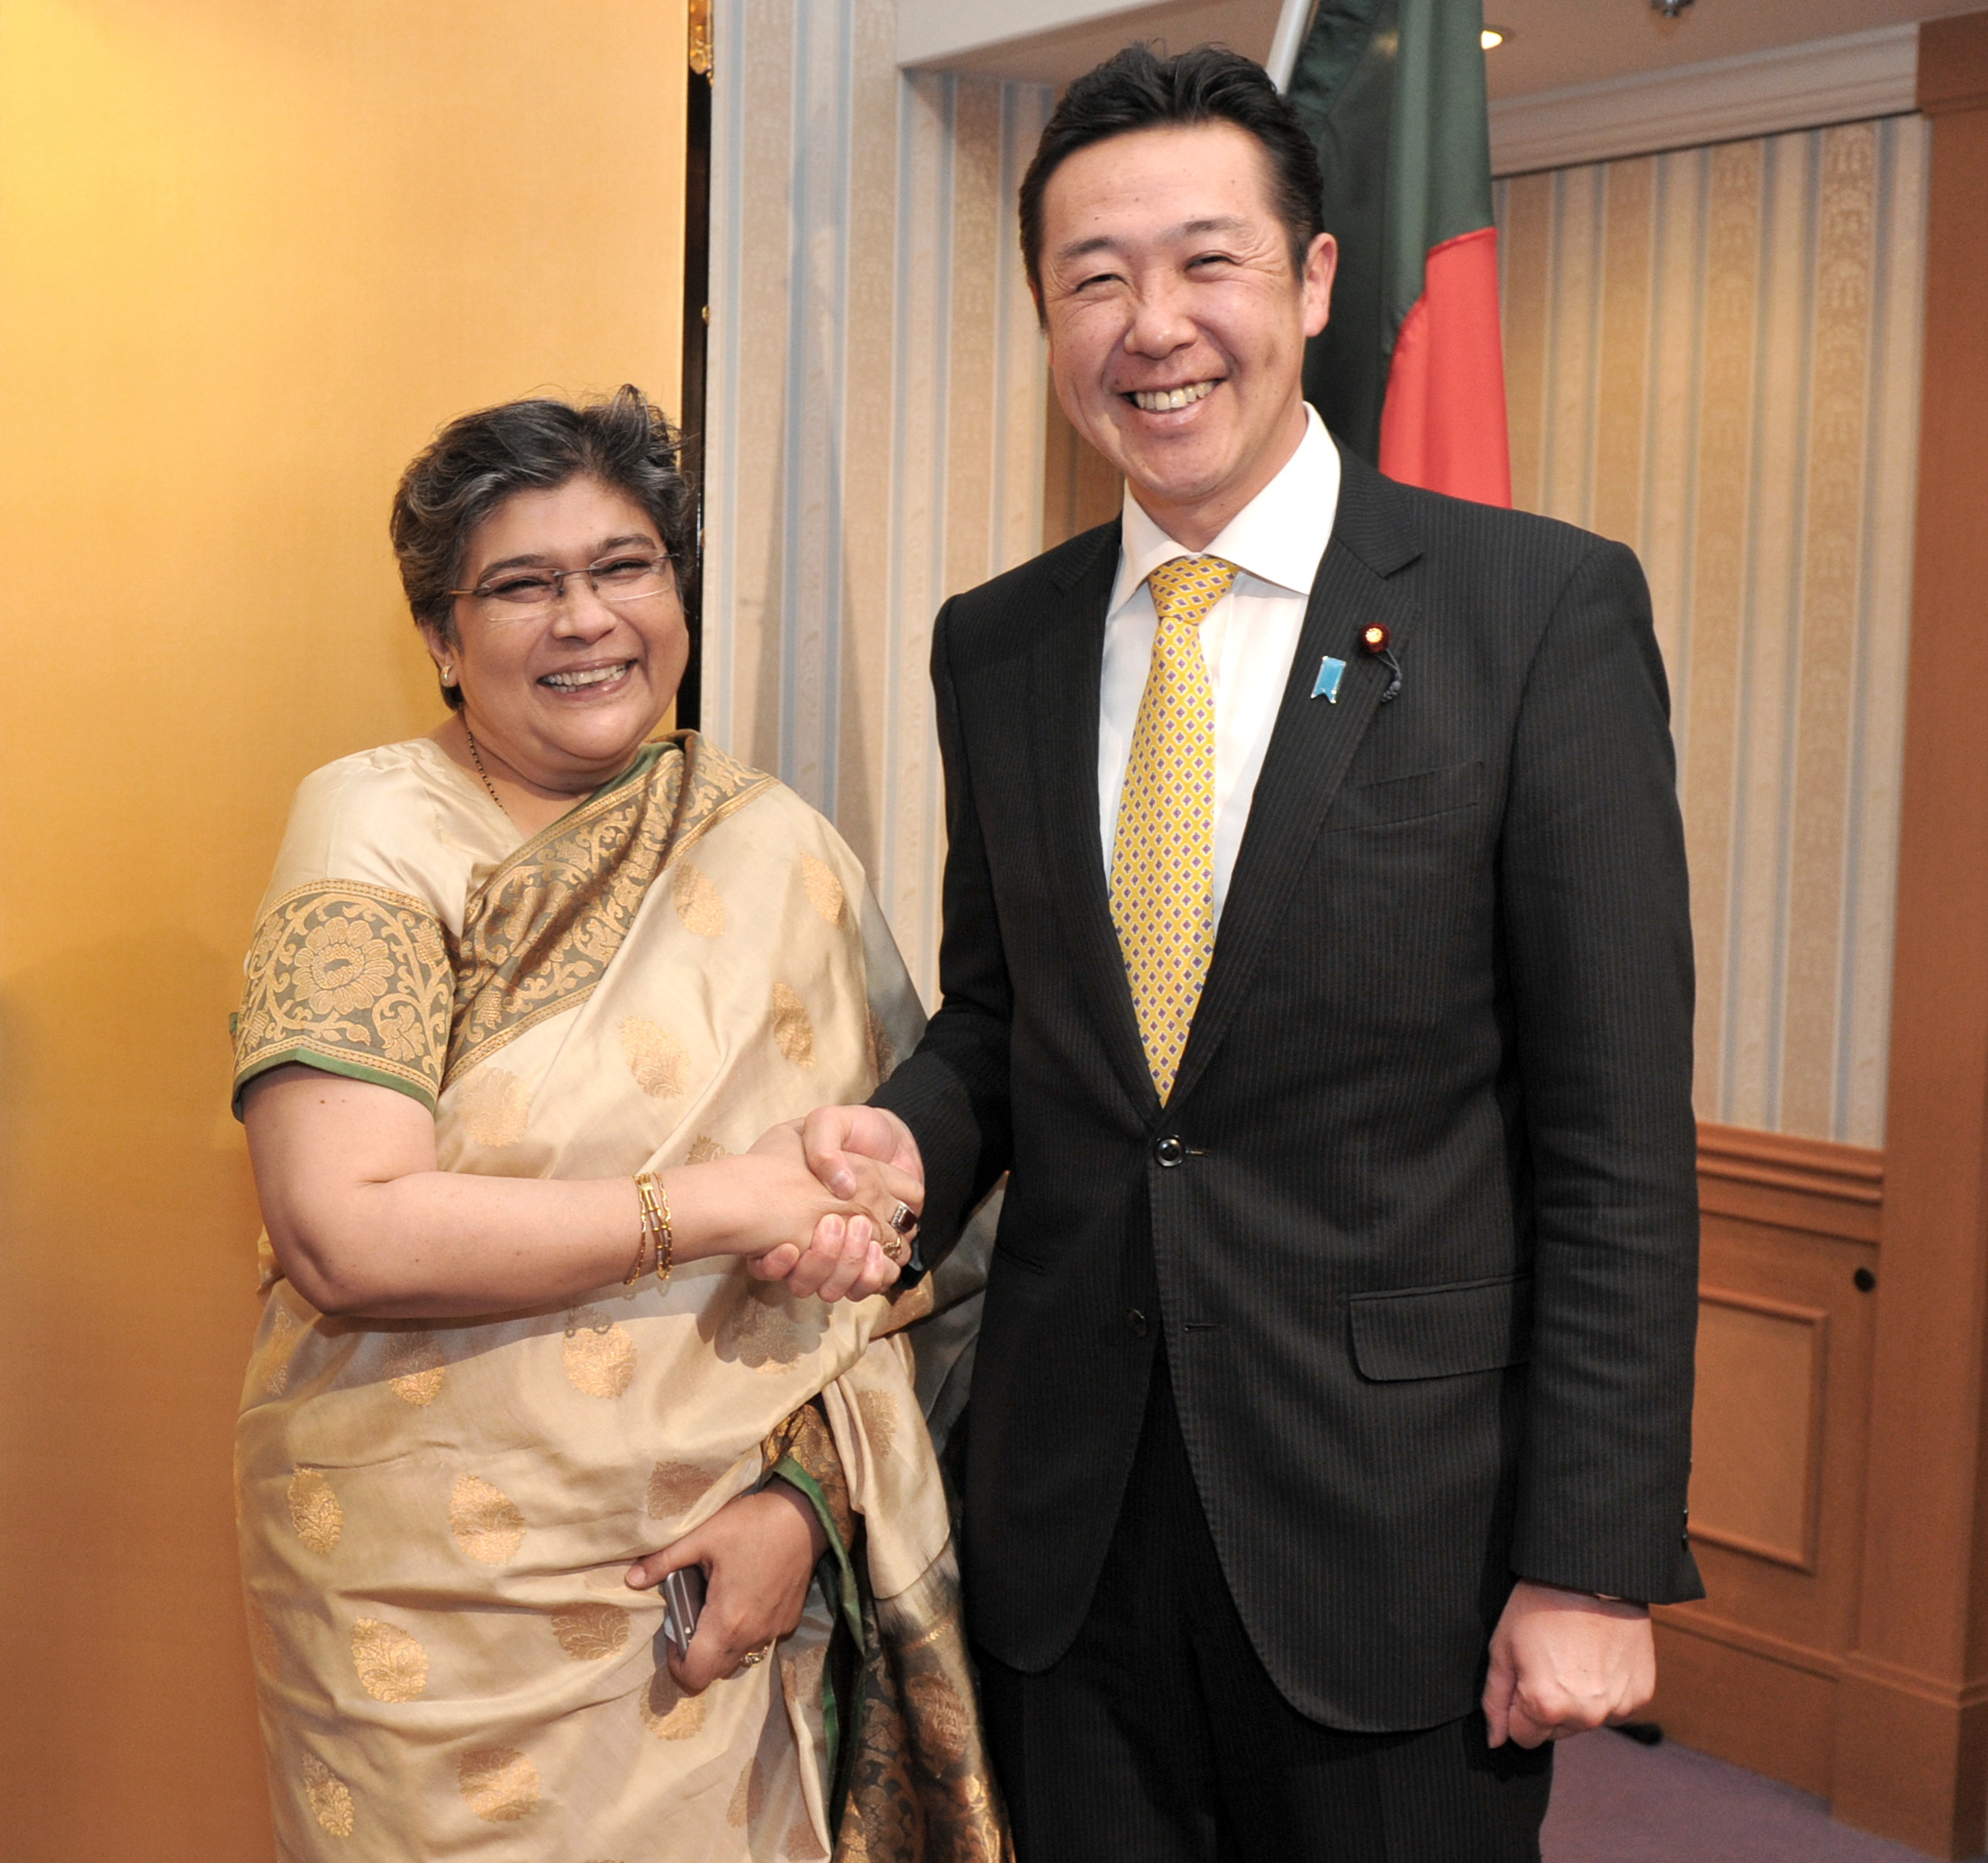 Bangladesh Ambassador Rabab Fatima (left) welcomes Parliamentary Vice-Minister for Foreign Affairs Hitoshi Kikawada (right) during a reception to celebrate of the country's the 45th Anniversary of Independence and National Day at Hotel Okura, Tokyo on March 29. | YOSHIAKI MIURA